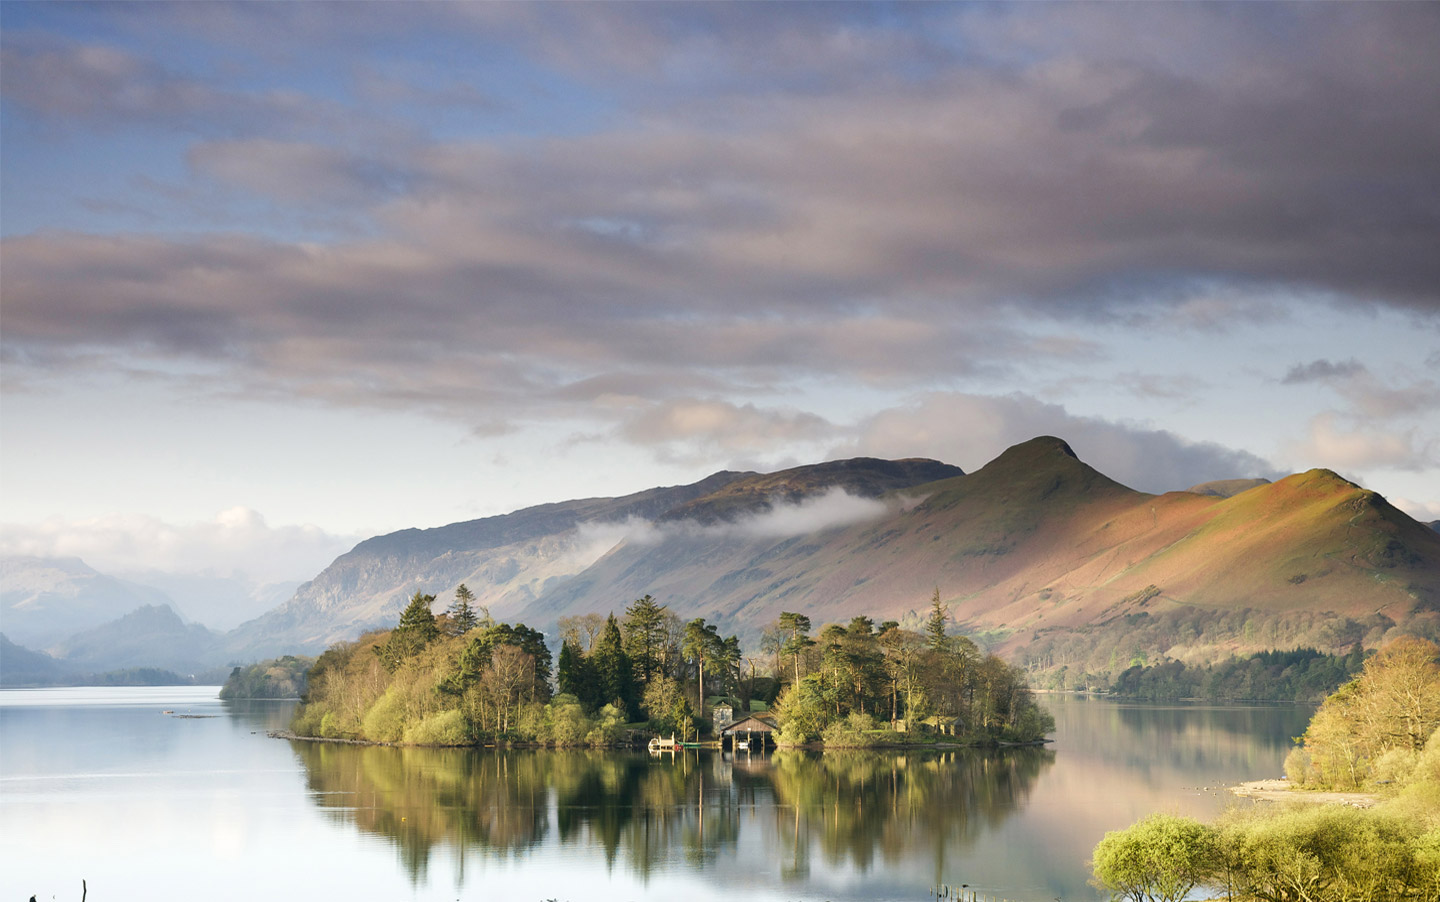 English Literature trip to The Lake District